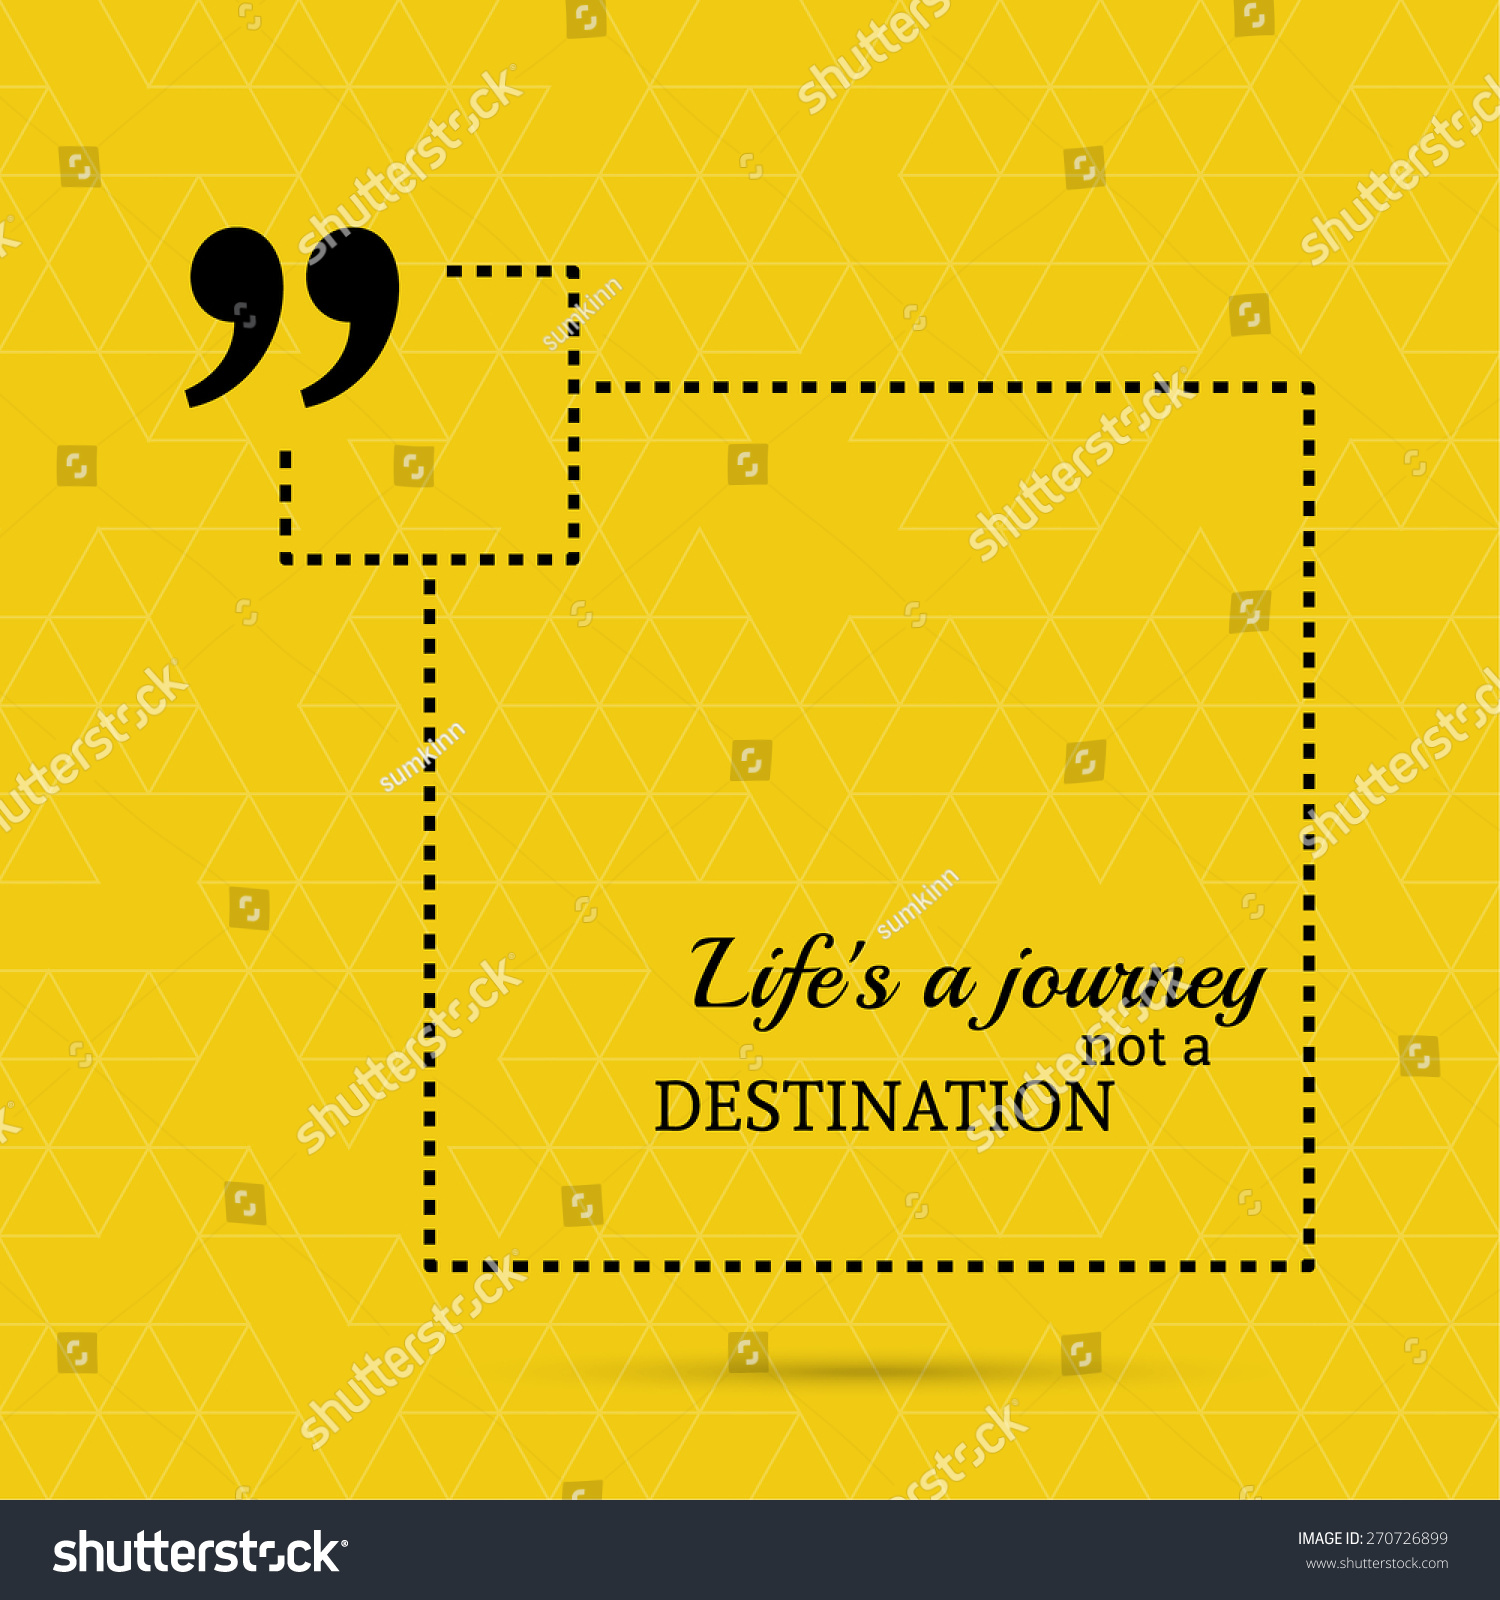 Wise Sayings And Quotes About Life Inspirational Quote Life Journey Not Destination Stock Vector